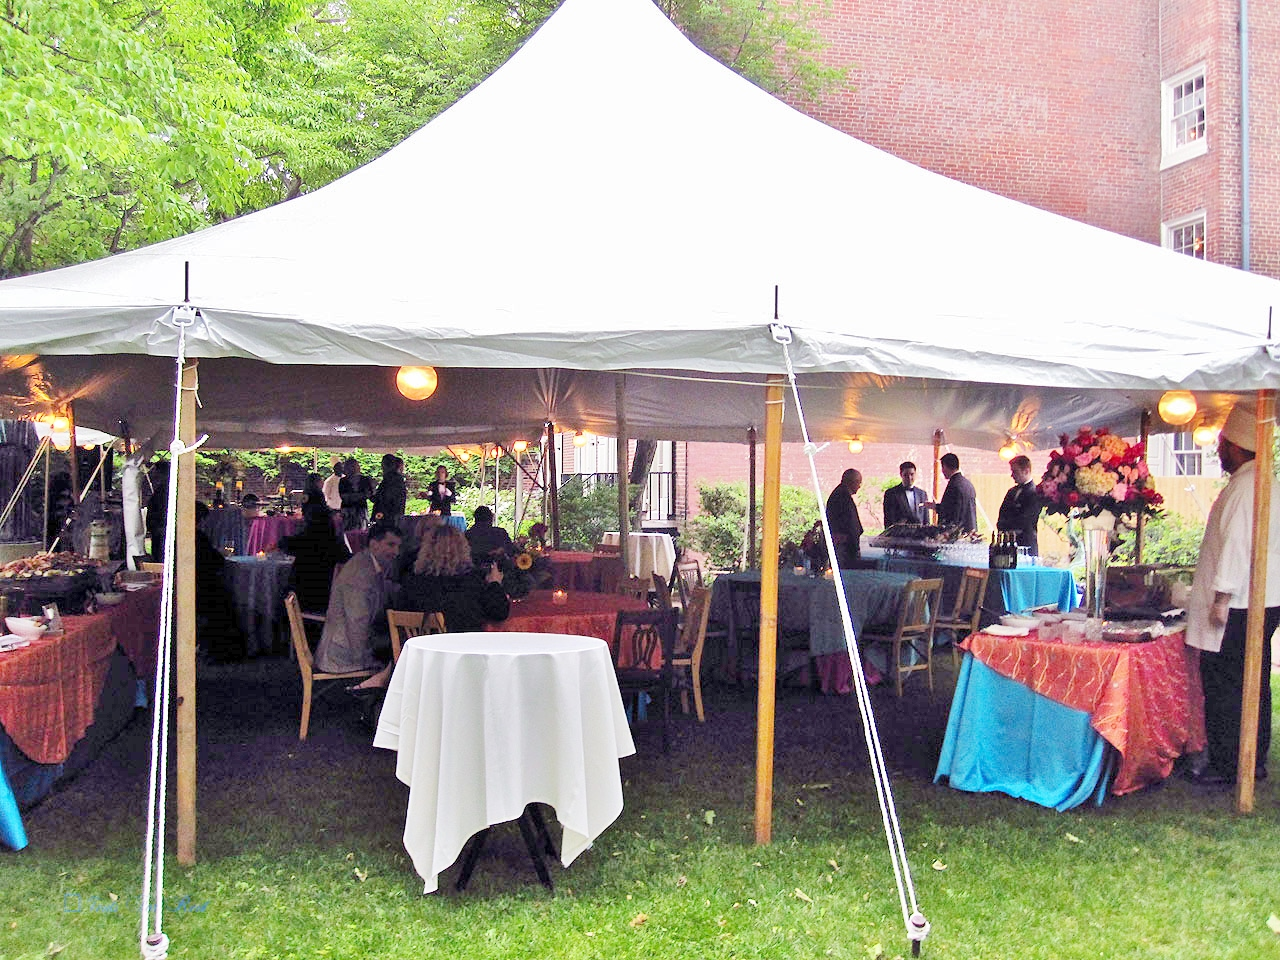 Rent a tent for your graduation party